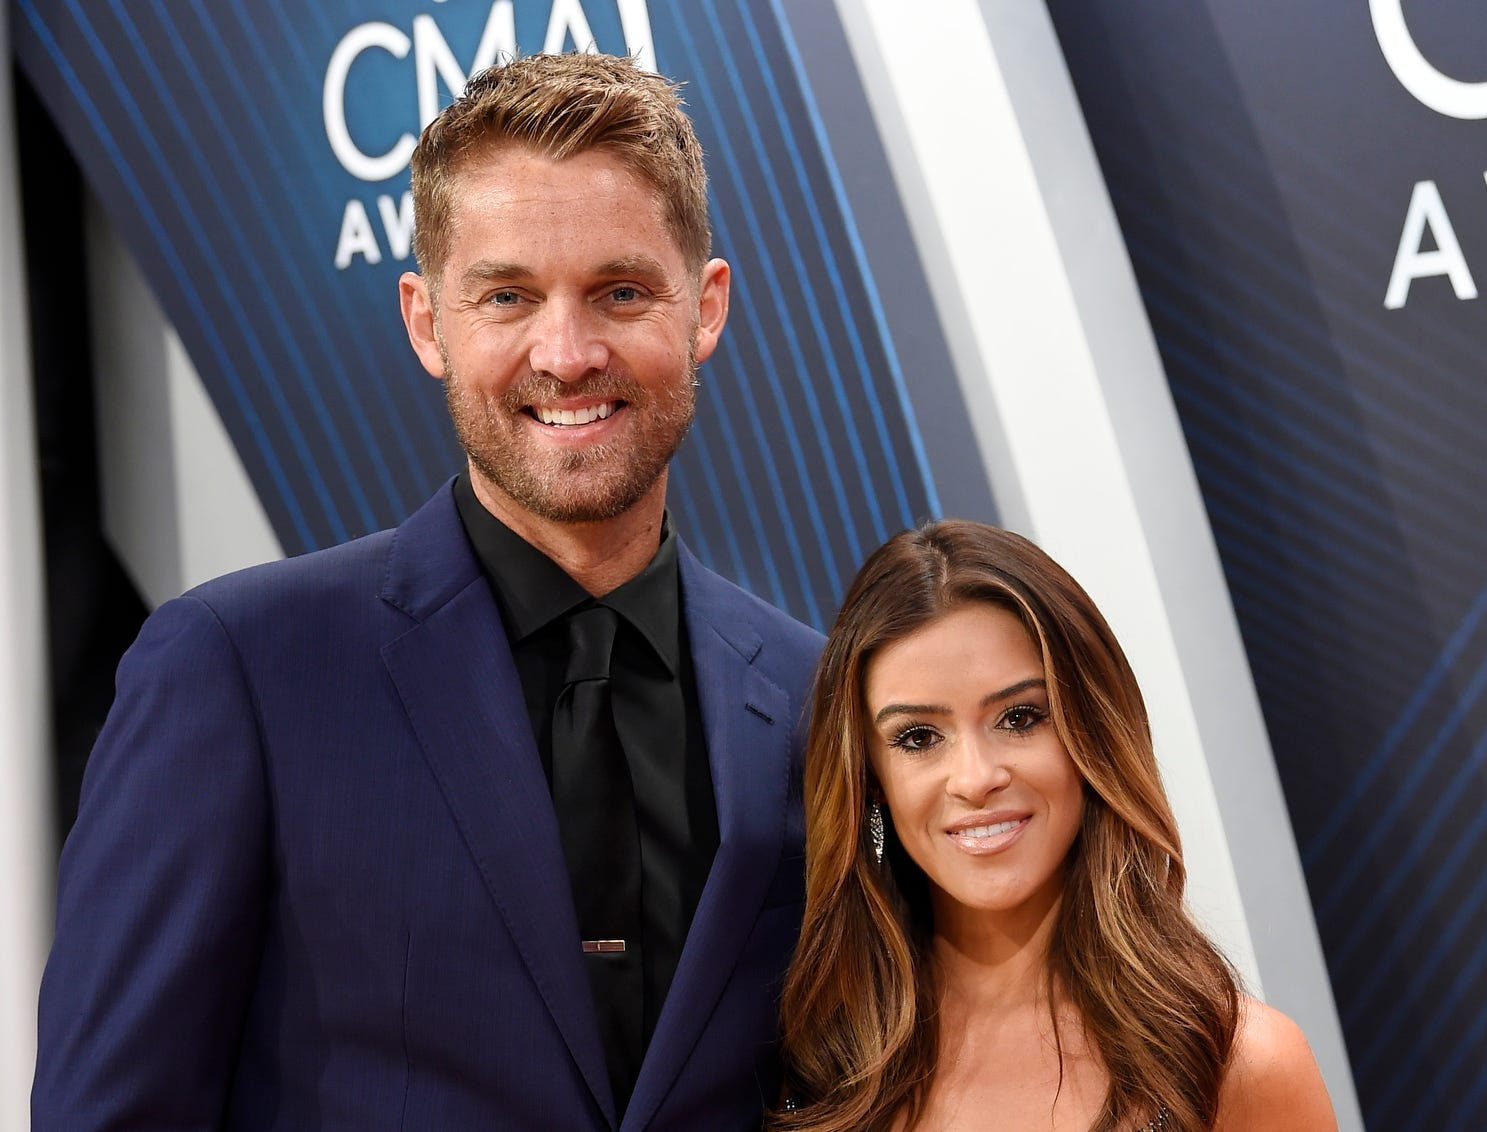 Newlyweds Brett Young and Taylor Mills